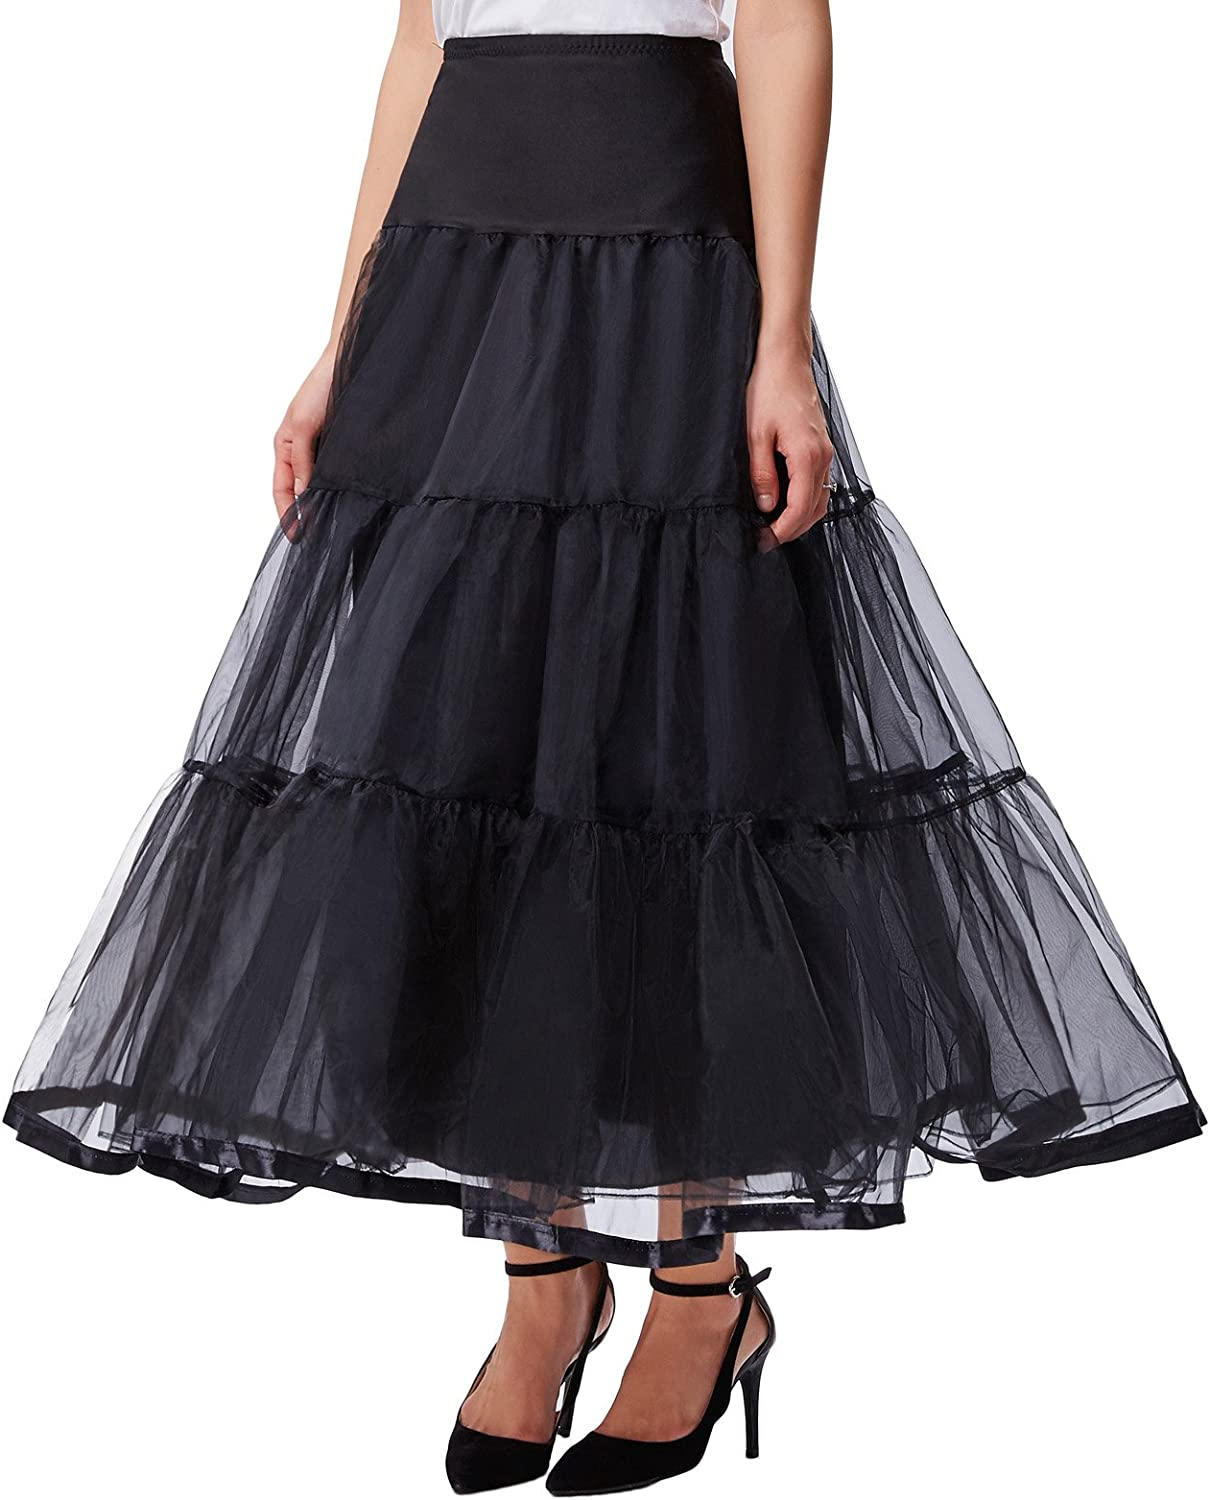 Steampunk Plus Size Clothing & Costumes GRACE KARIN Womens Ankle Length Petticoats Wedding Slips Plus Size S-3X  AT vintagedancer.com